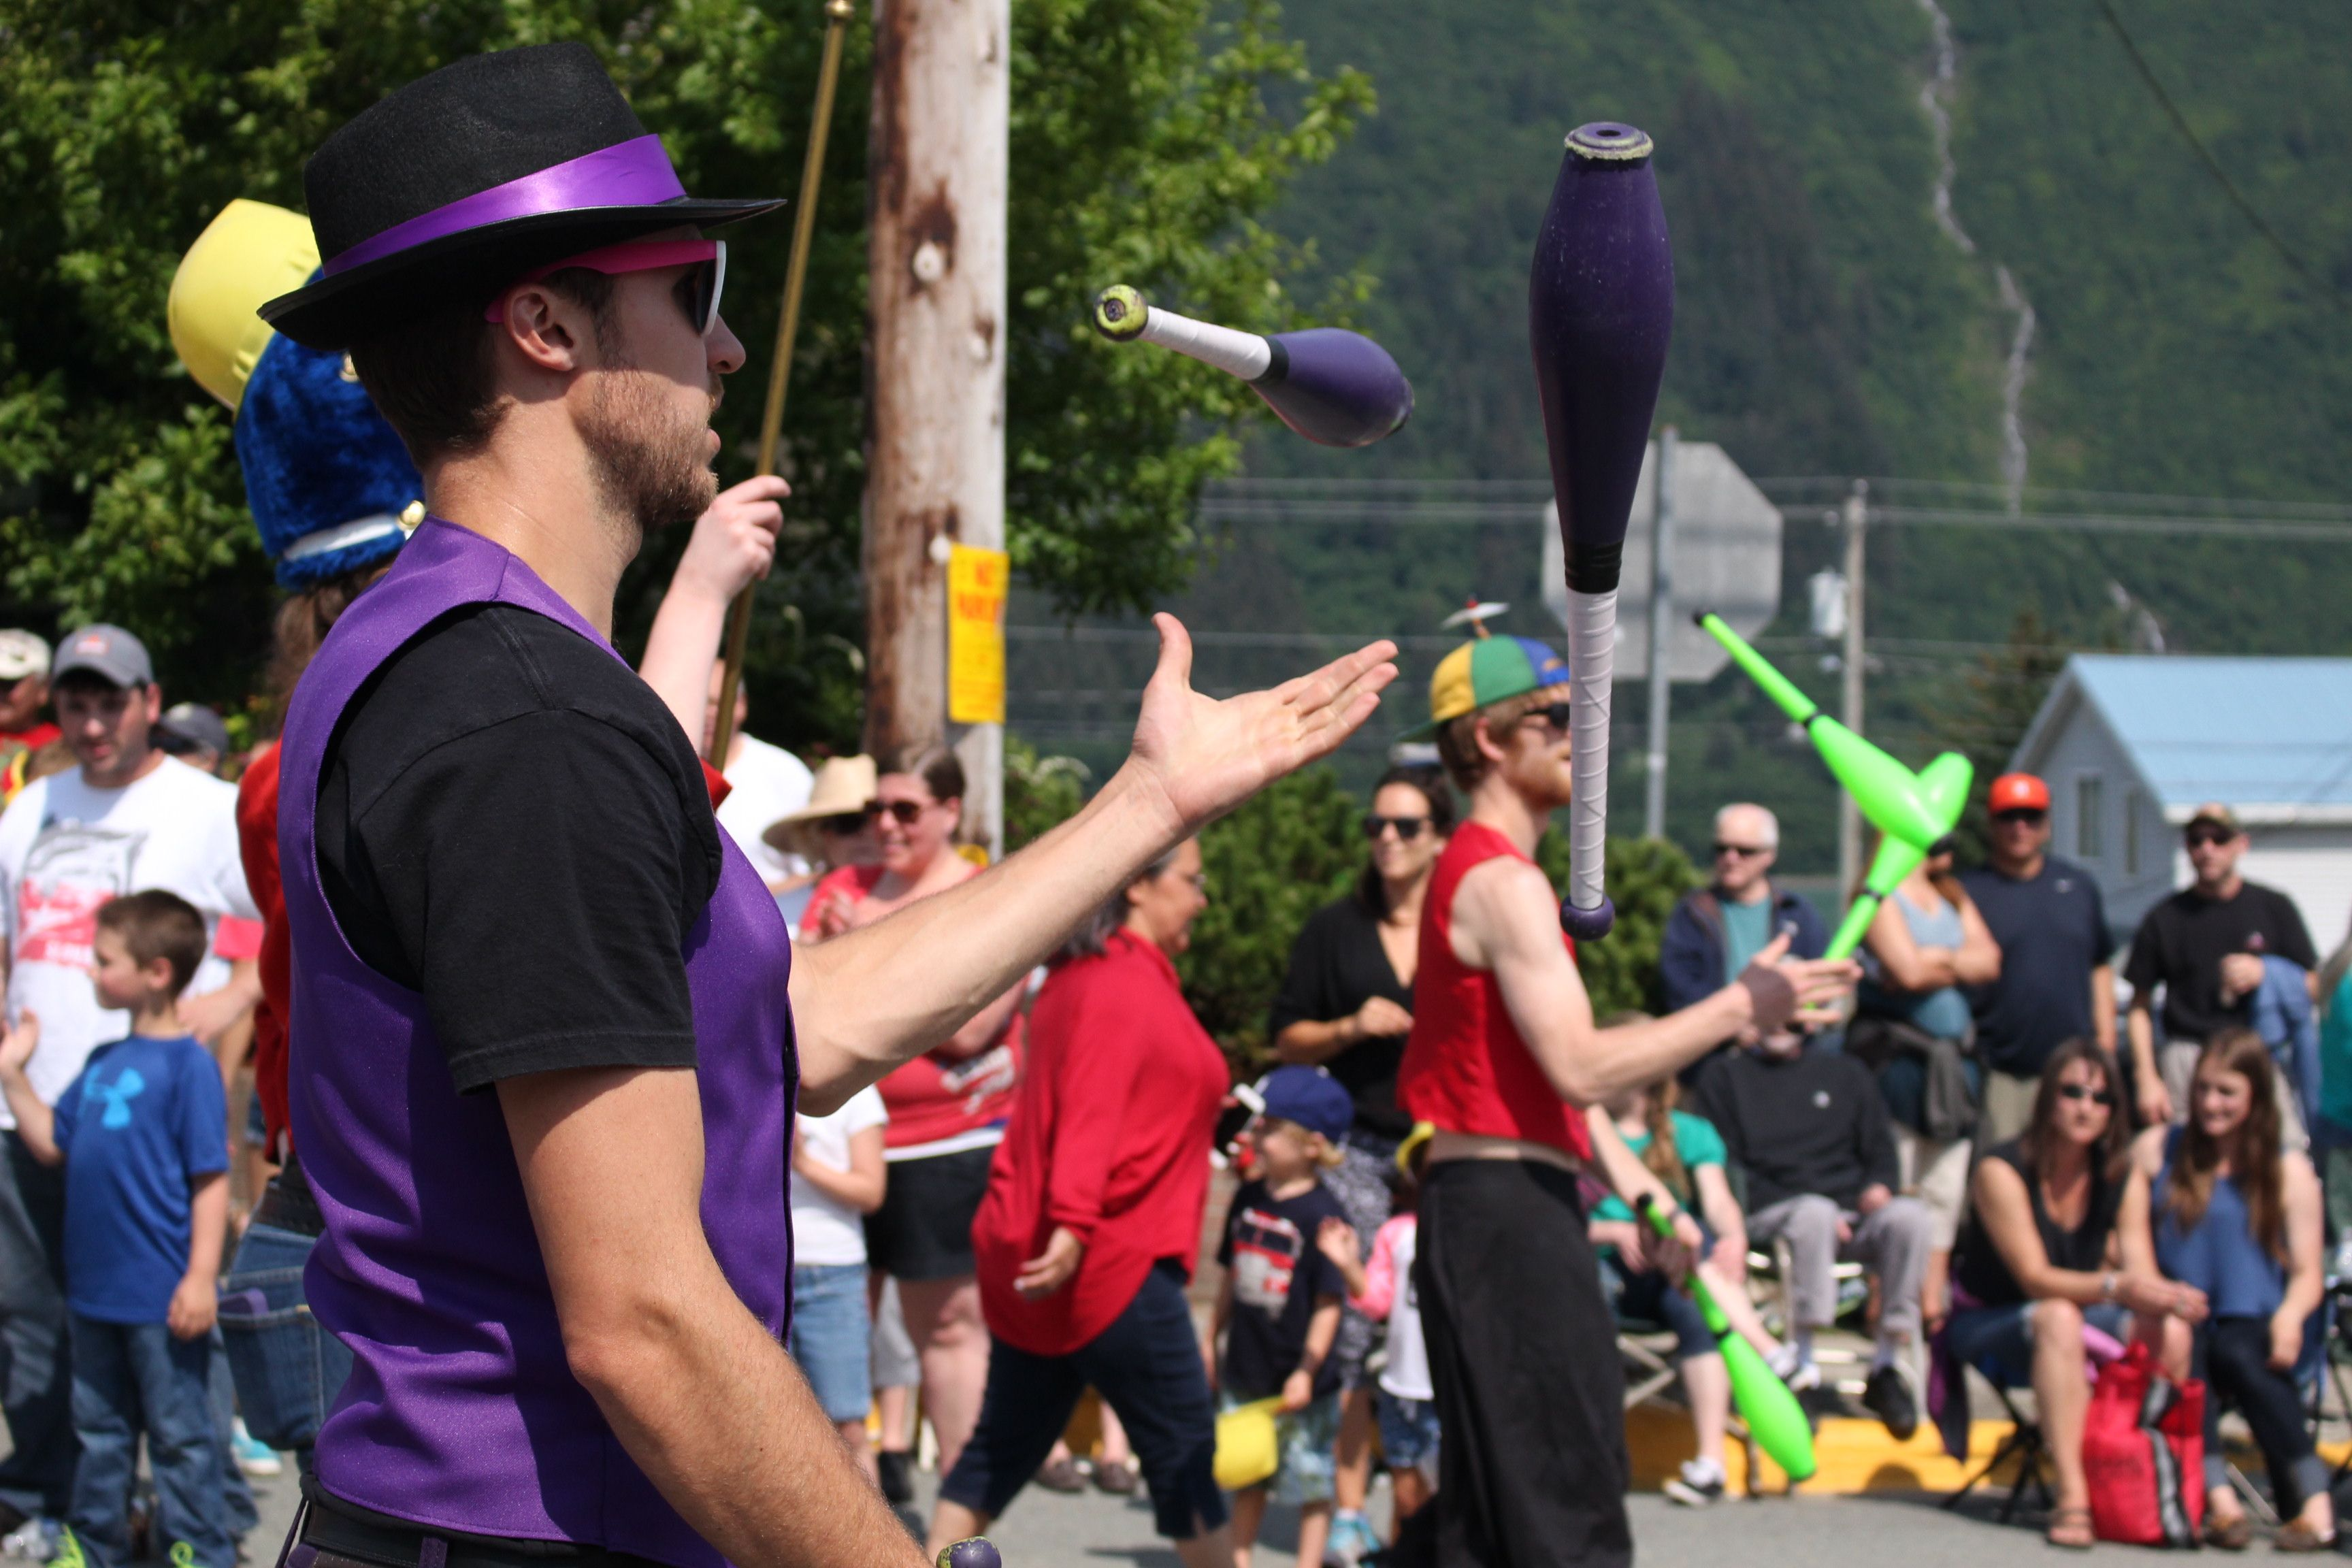 A member of the of the New Old Time Chautauqua juggles at the Douglas Fourth of July parade. (Photo by Elizabeth Jenkins/KTOO)